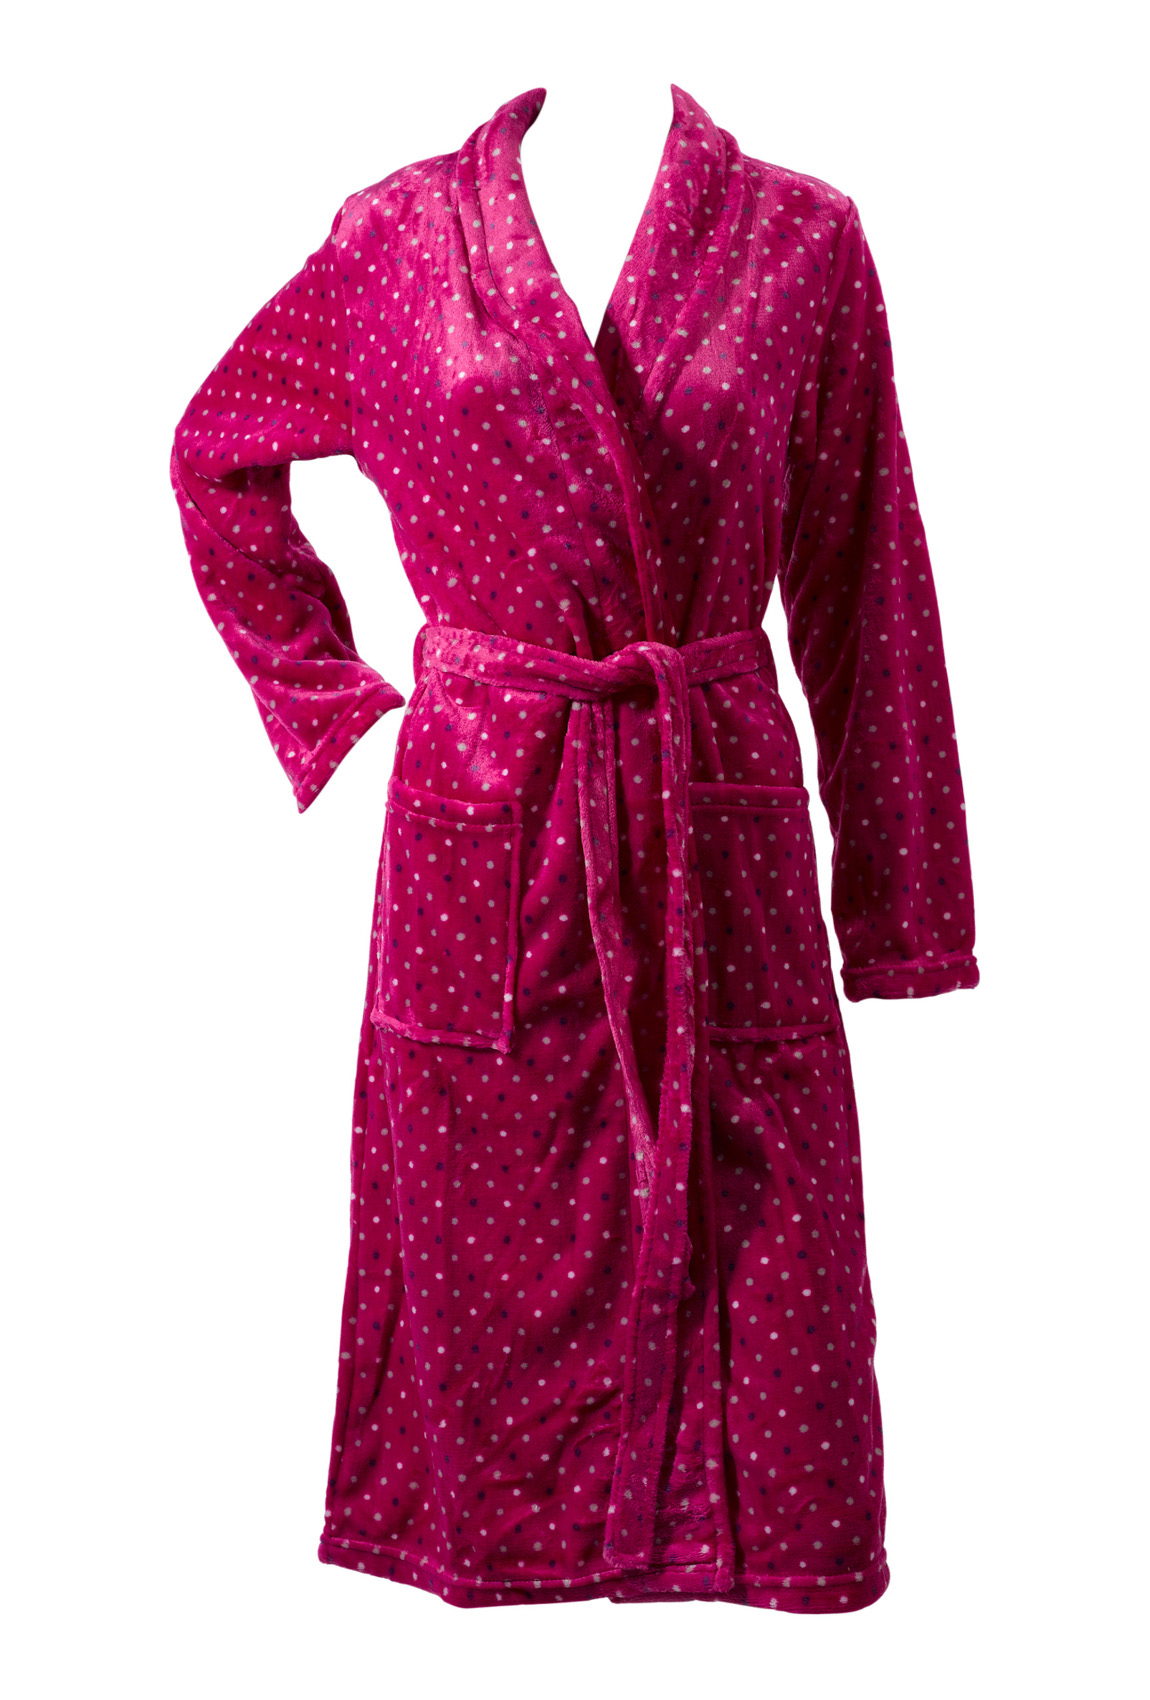 Ladies Soft Fleece Spotty Dressing Gown with Novelty Animal Hood. £ Lady Selena Suzie Ditsy Floral Kimono Wrap Over, Women's Dressing Gown Sizes 8 to £ - £ Prime. 5 out of 5 stars 1. Jusfitsu Women Classic Long Sleeve Printed Satin .